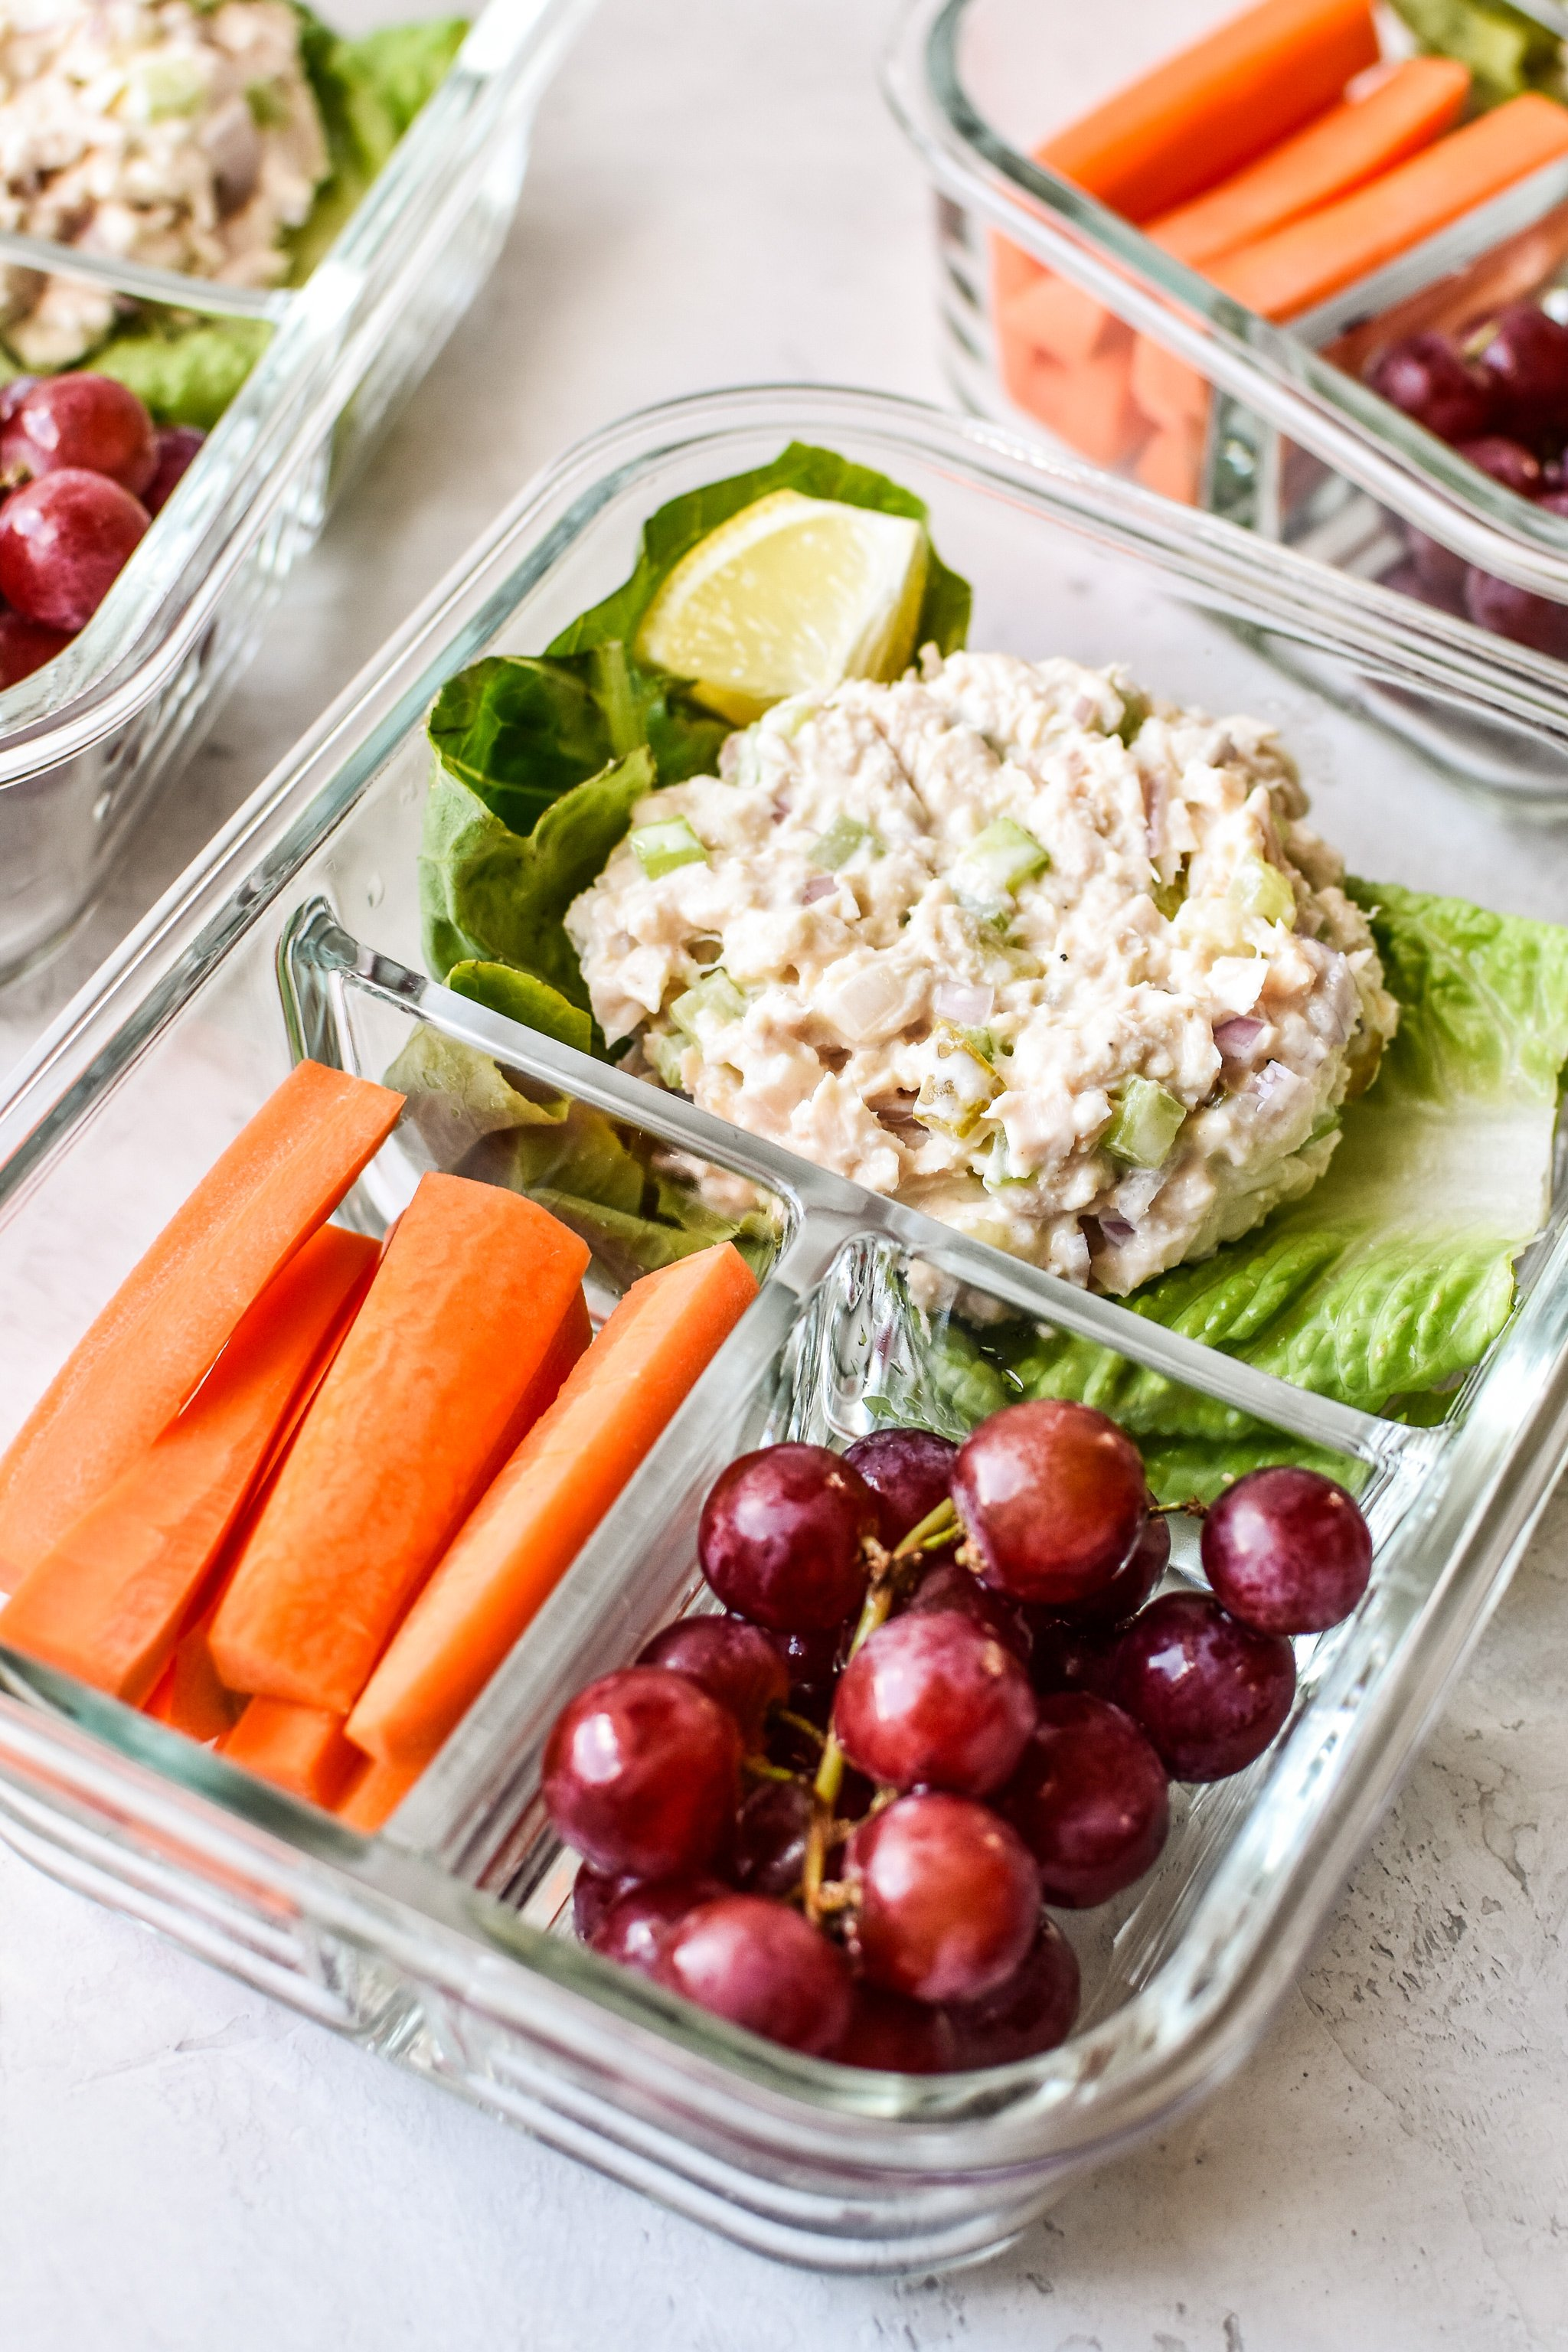 Low carb tuna salad meal prep lunch with carrots and grapes.